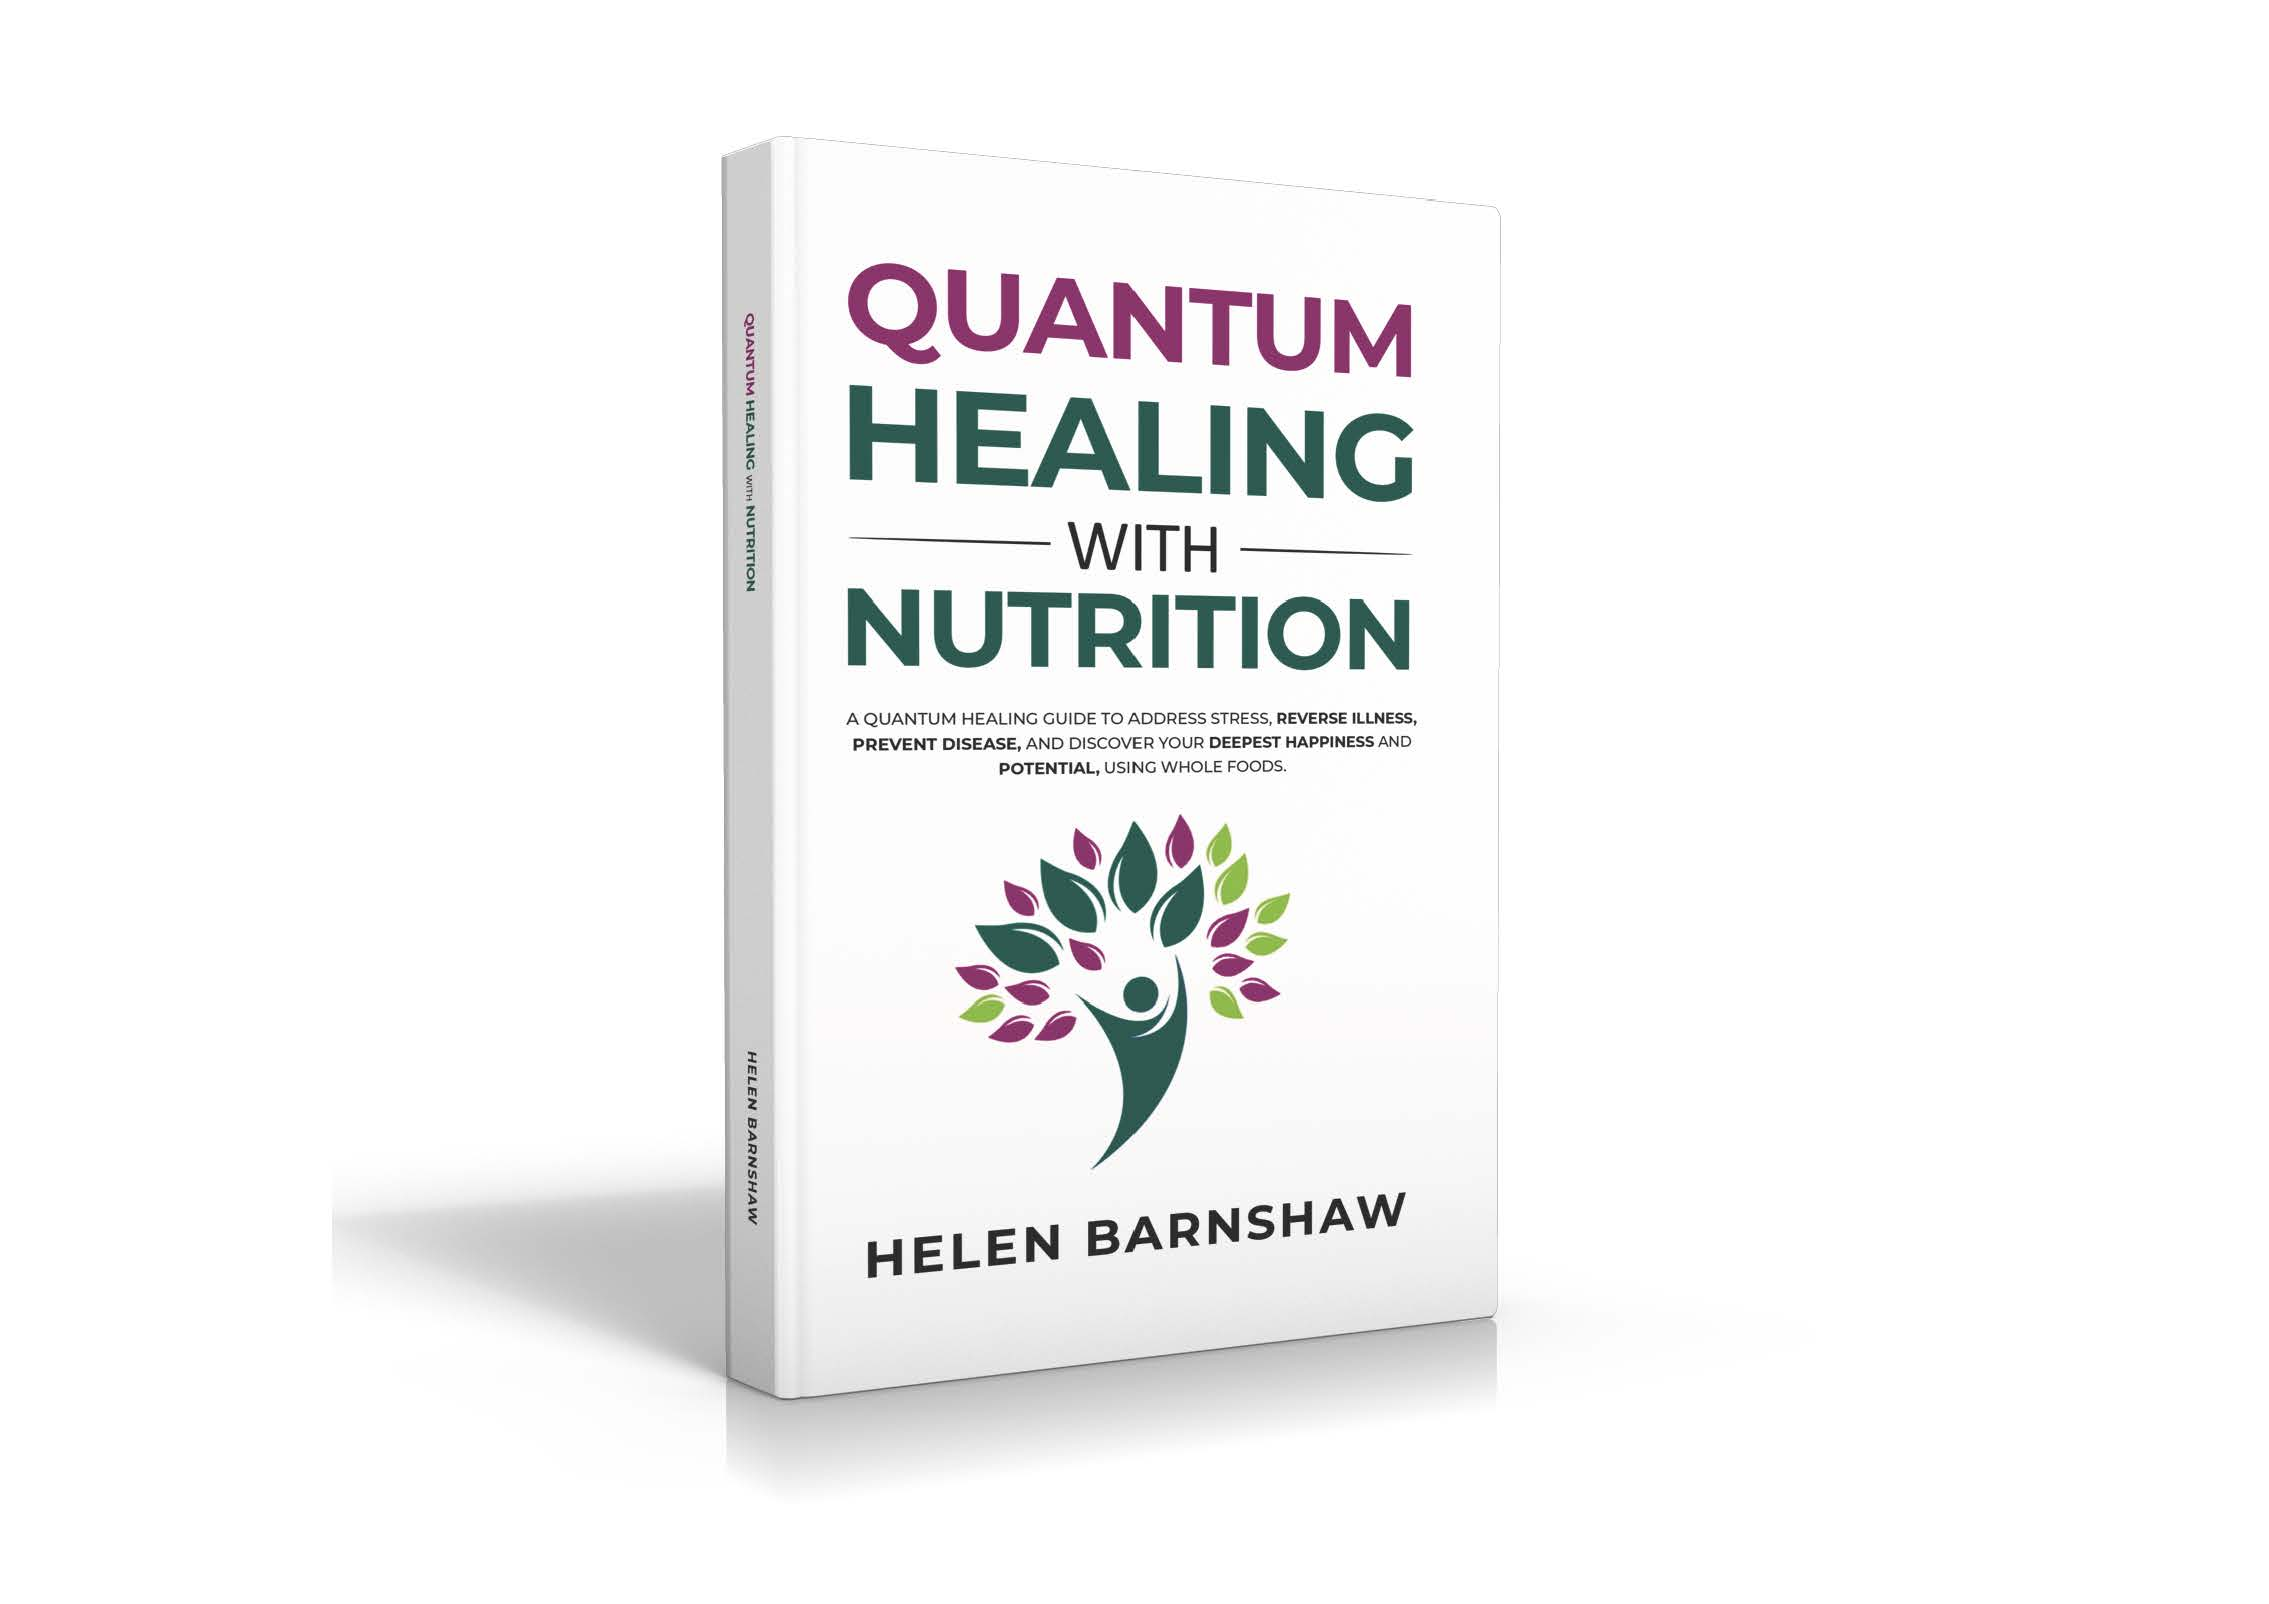 Book published this March 2021: Quantum Healing with Nutrition